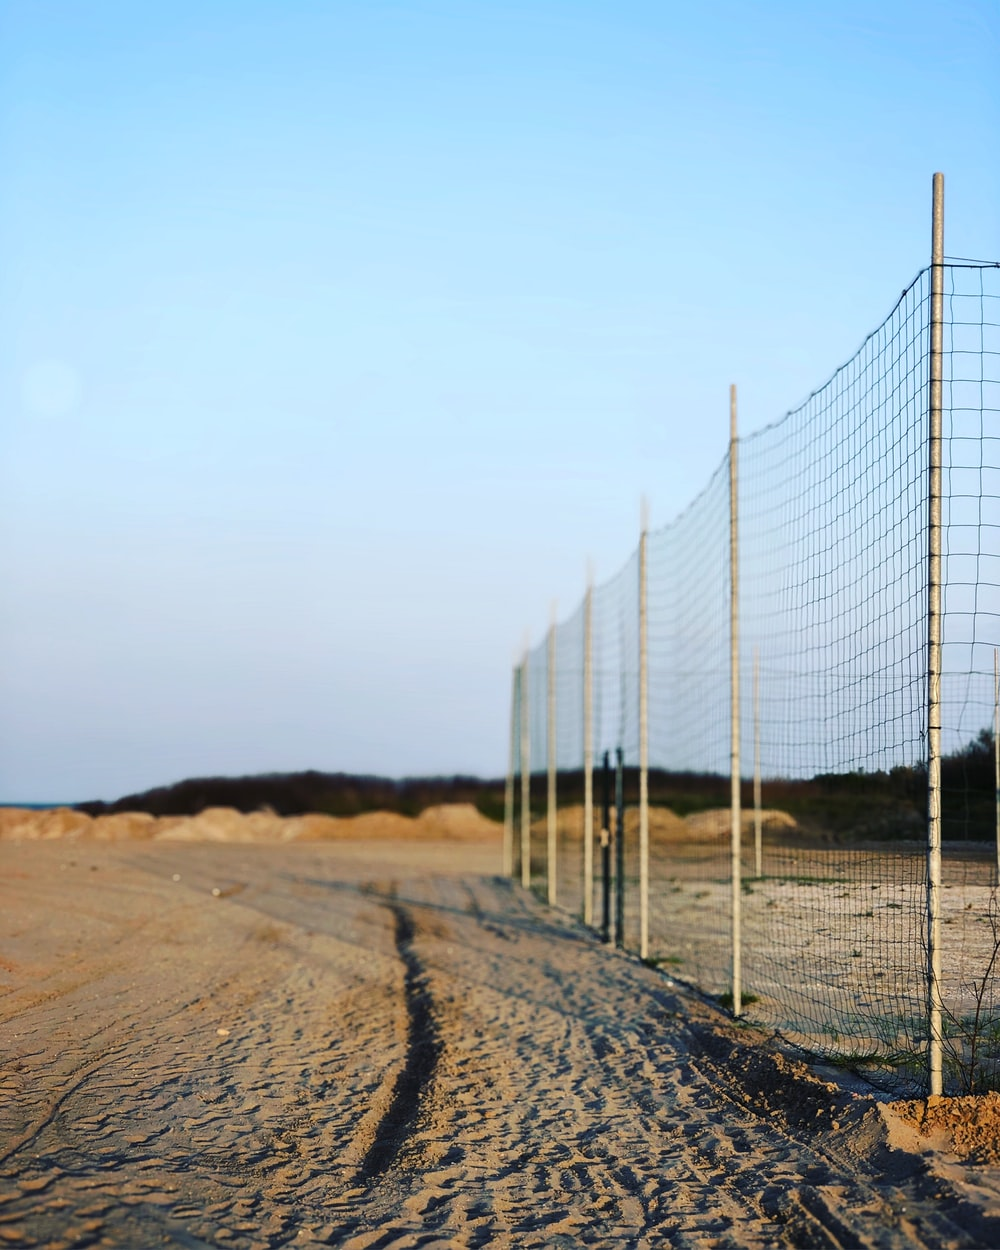 Wire Mesh Fence Pictures   Download Free Images on Unsplash